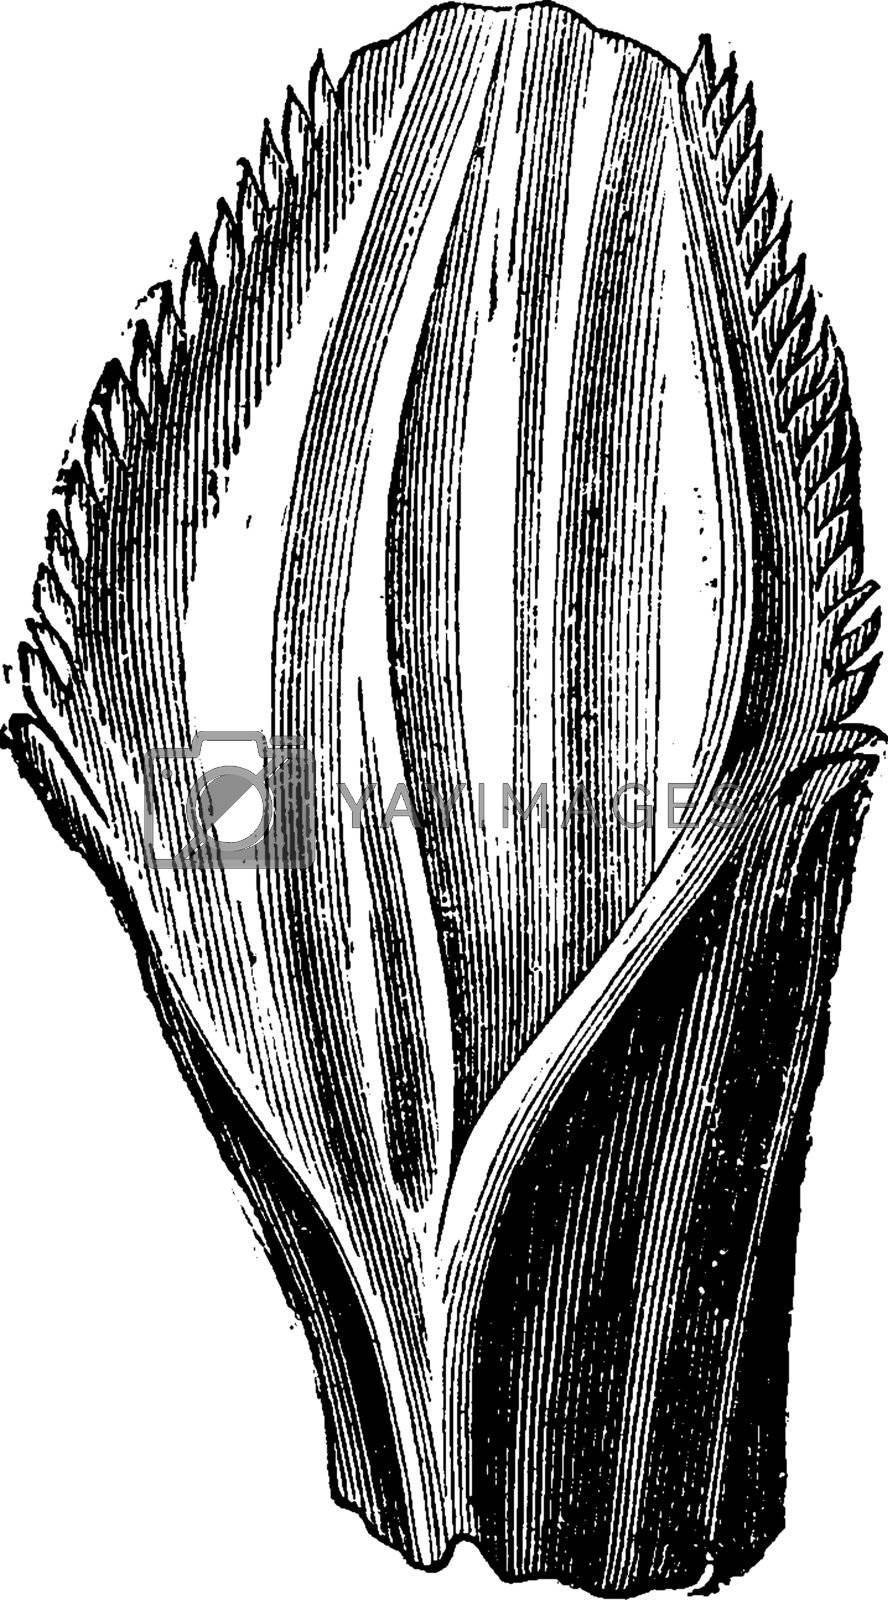 Iguanodon tooth, vintage engraved illustration. Earth before man – 1886.